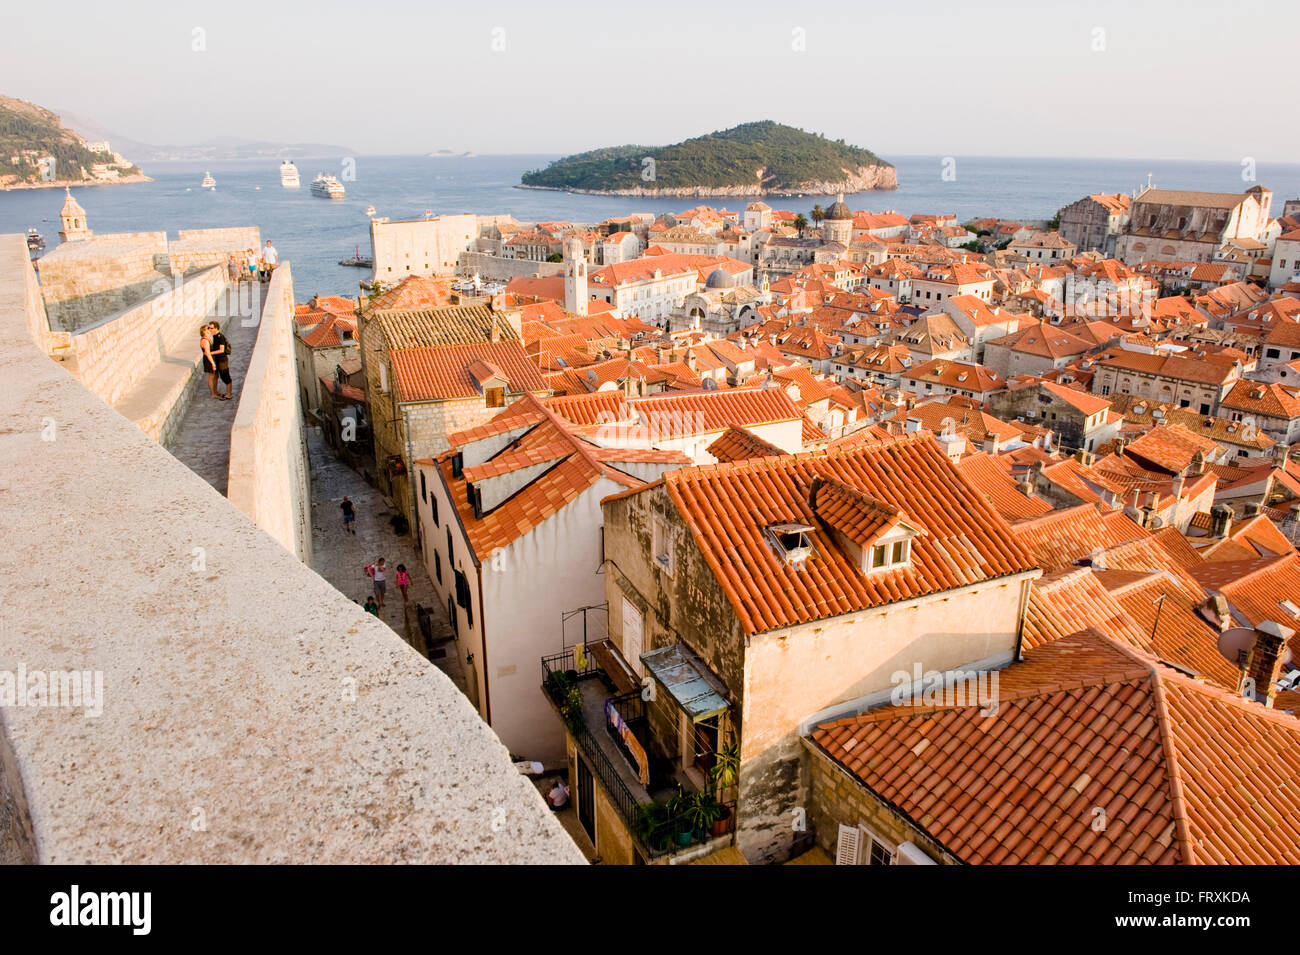 View over roofs to Elaphites, Dubrovnic, Croatia Stock Photo